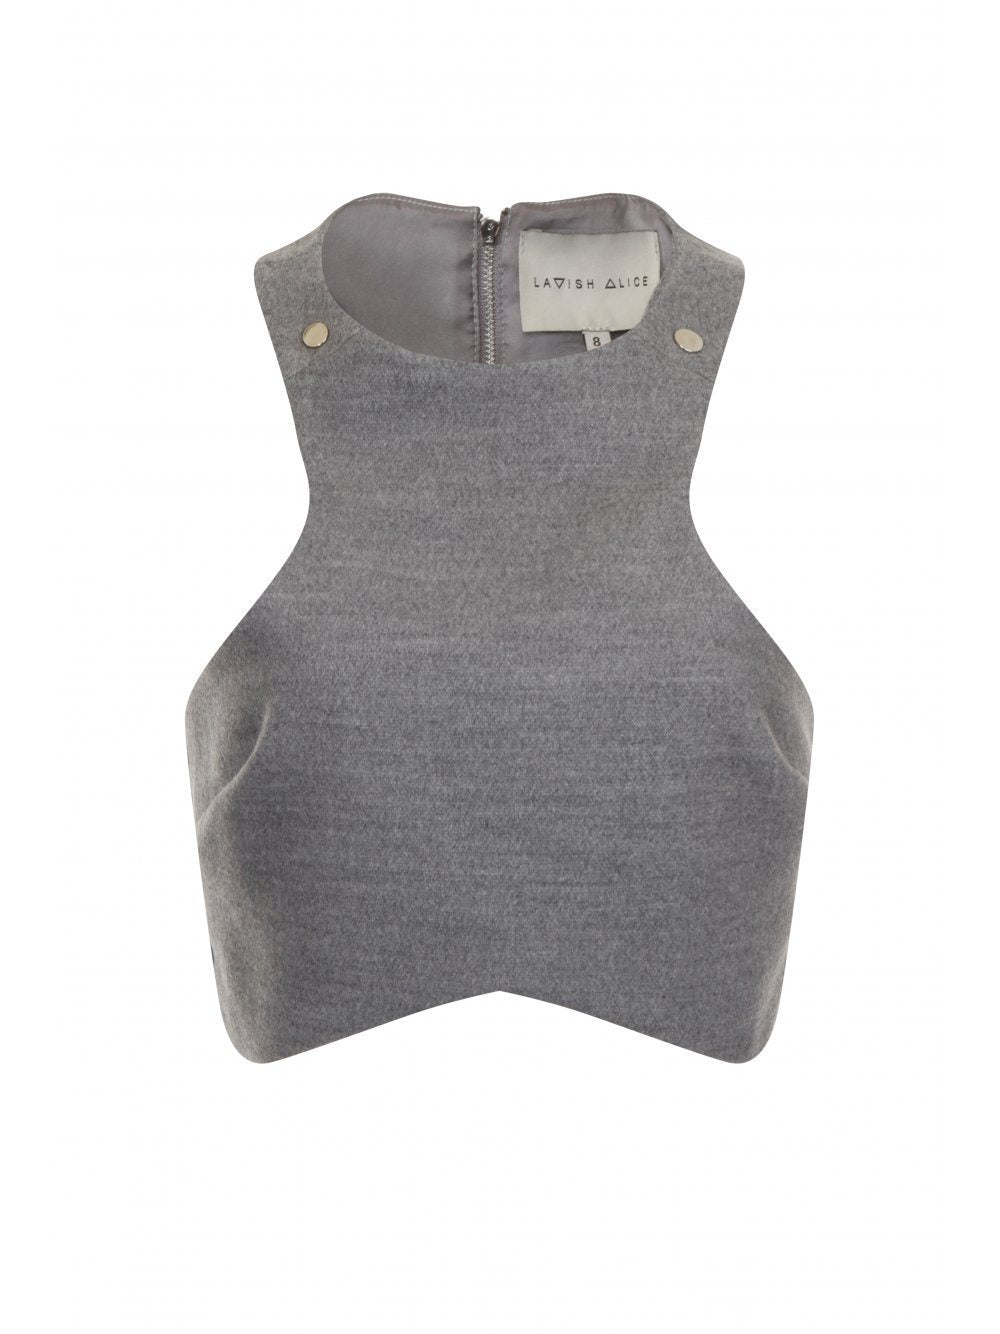 Grey Marl Press Stud Detail Racer Crop Top (Gigi Hadid)